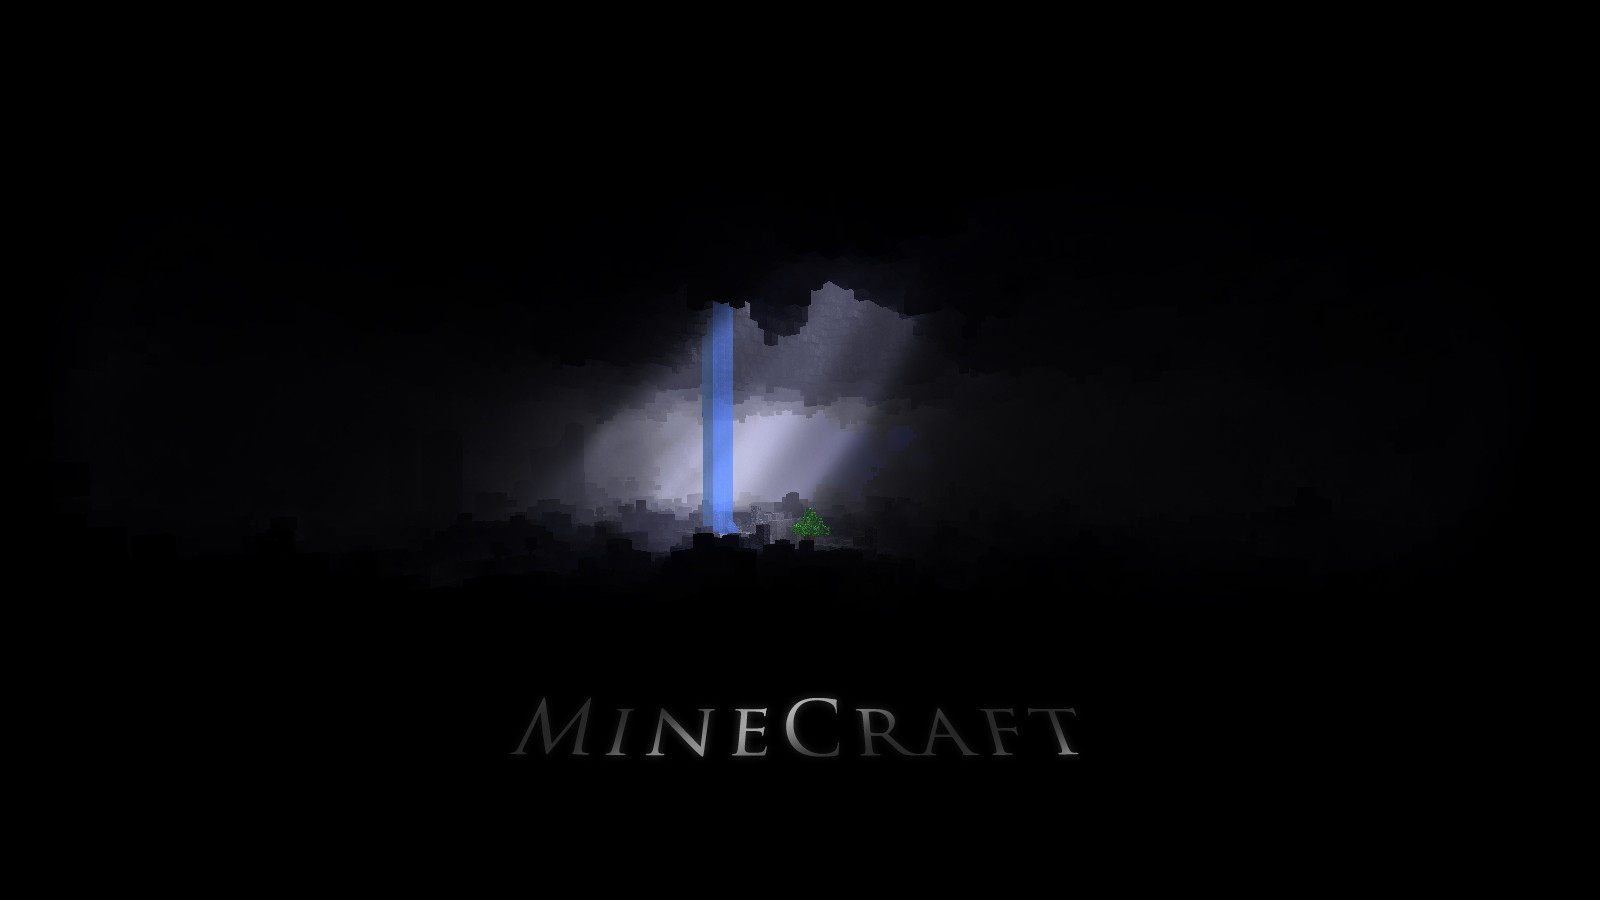 38 Minecraft Wallpaper With Your Skin On Wallpapersafari